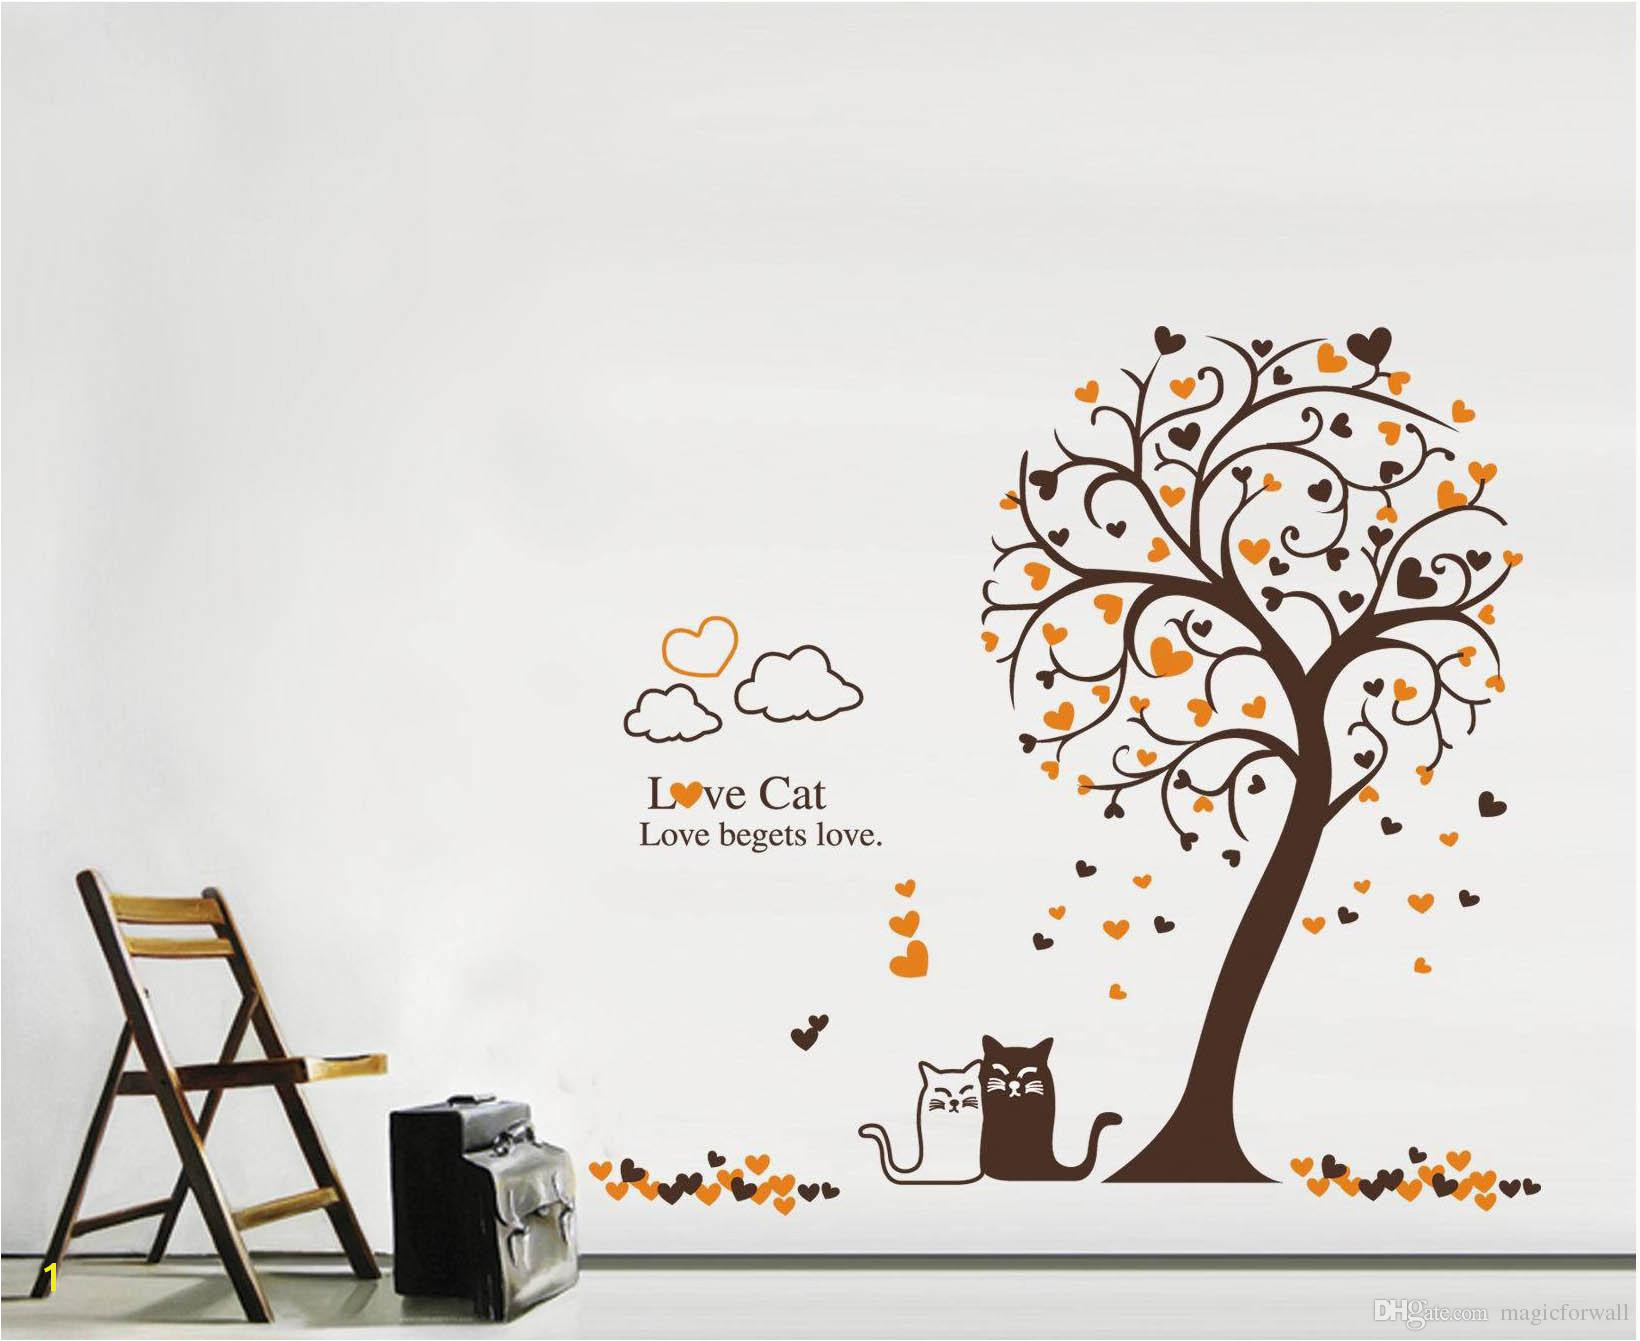 Cartoon Loving Cat Under Tree Wall Art Mural Decor Removable PVC Art Decal Living Room Sofa Background Wallpaper Decoration Mario Wall Stickers Mirror Wall